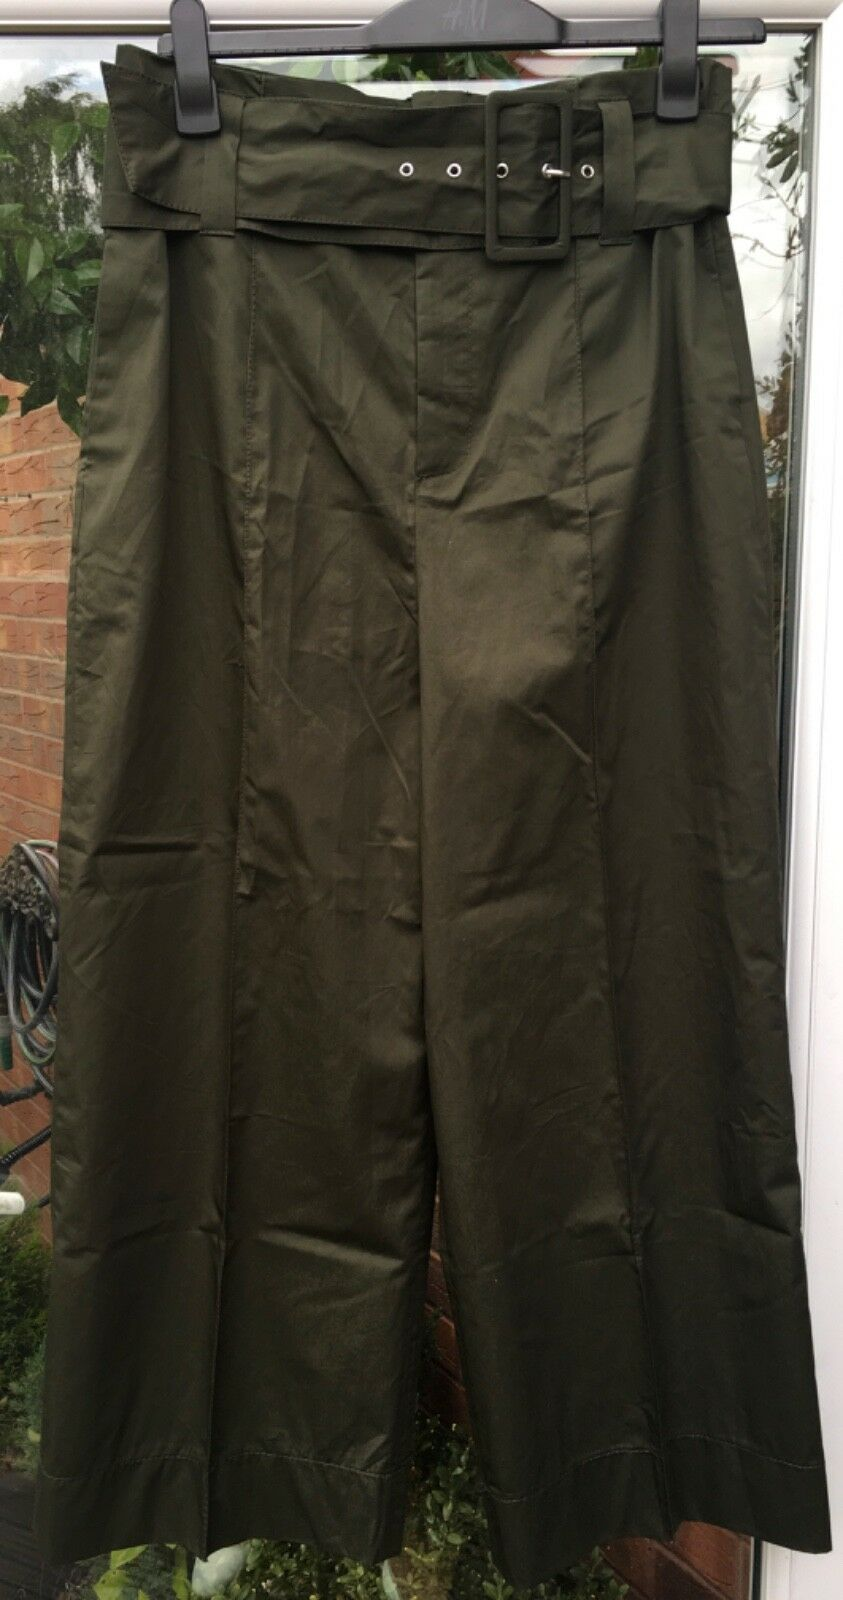 BNWT ZARA KHAKI GREEN COTTON POPLIN TROUSERS WITH BELT SIZE L S S 2018